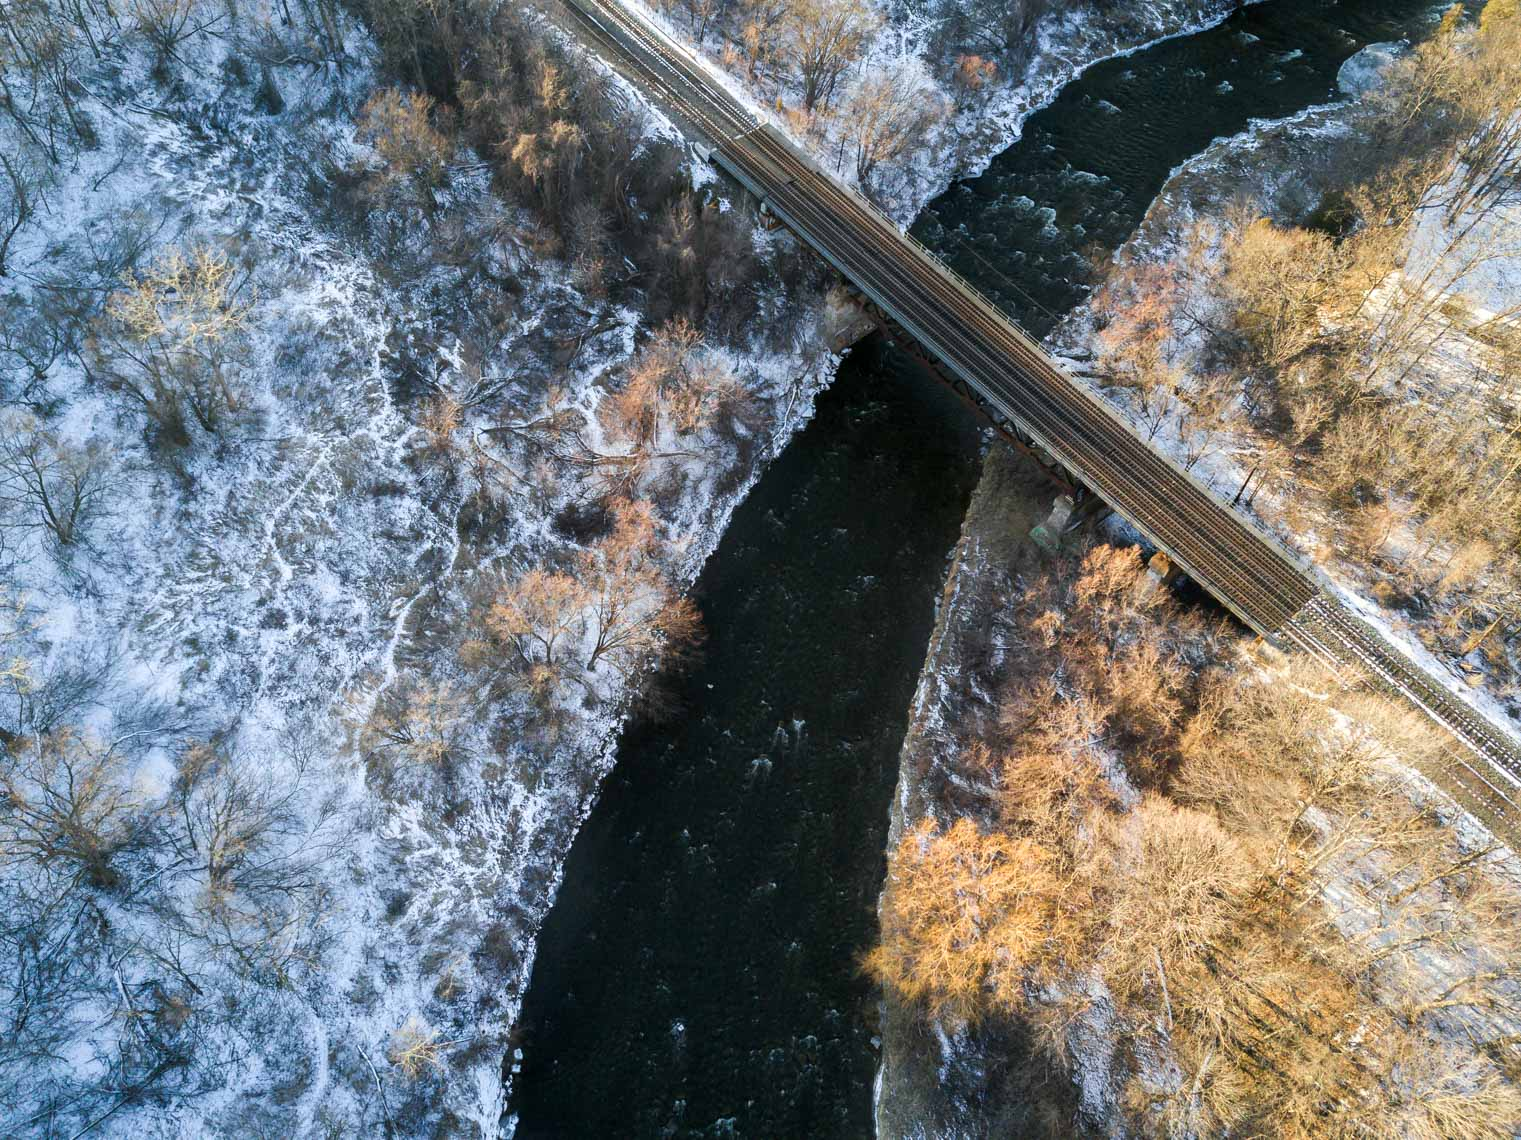 Aerial view of Streetsville Mermorial Park bridge in winter